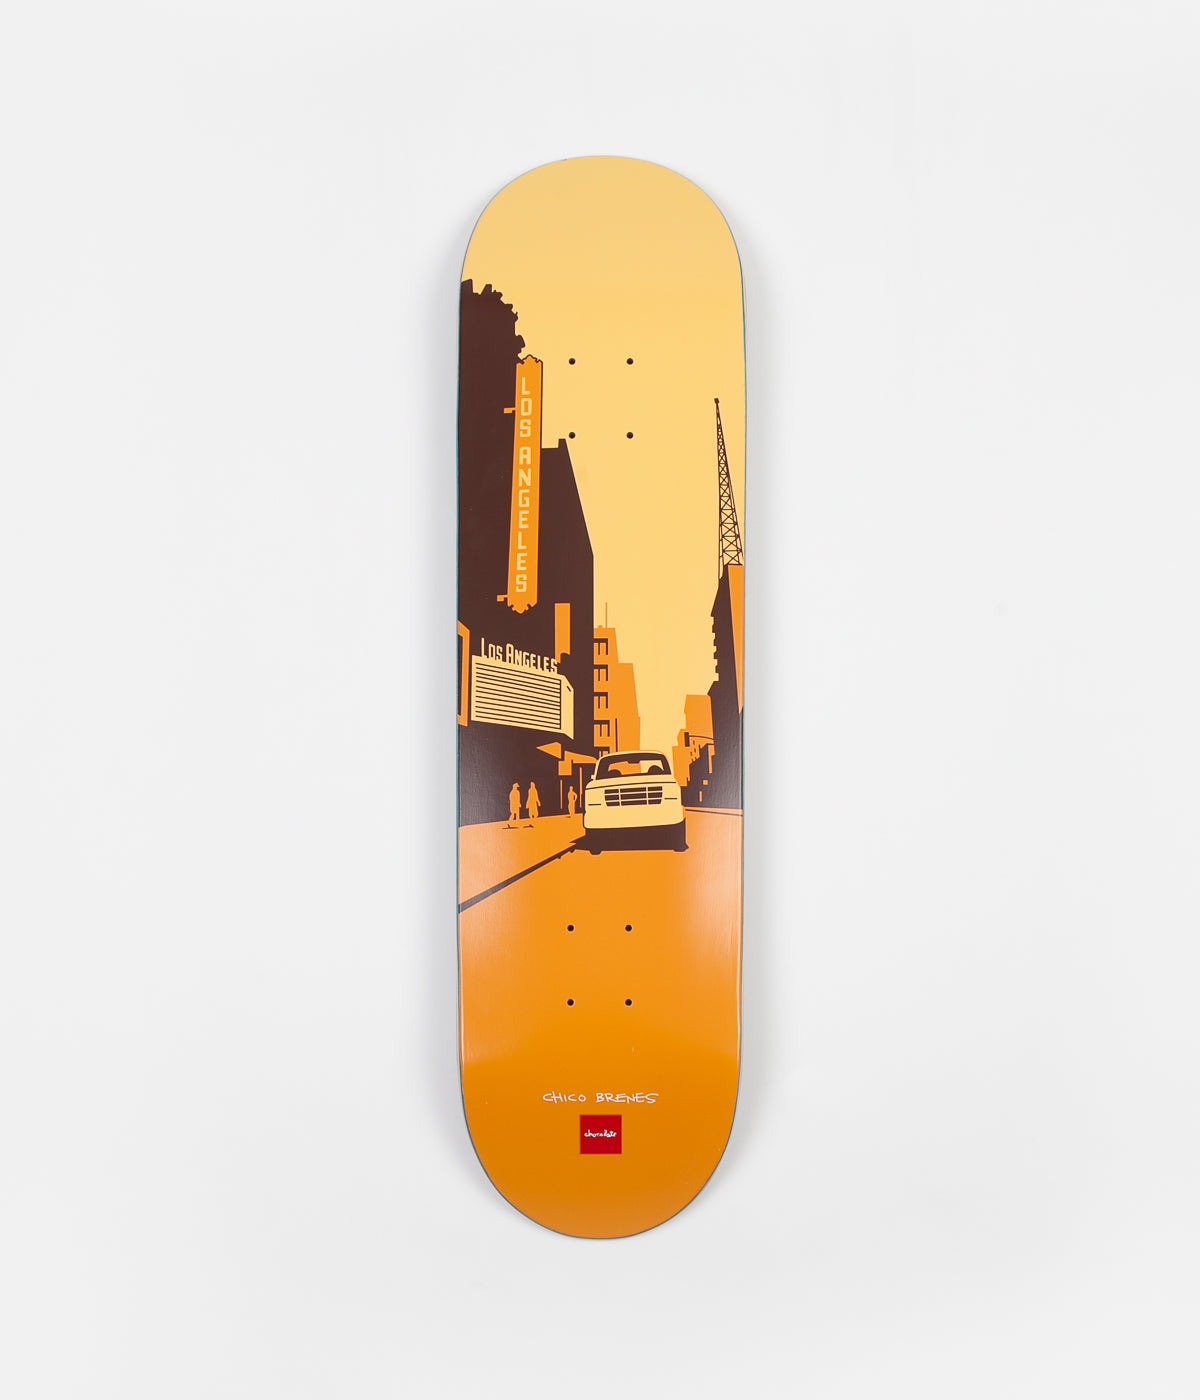 Chocolate The City Chico Brenes Deck - 8.25""